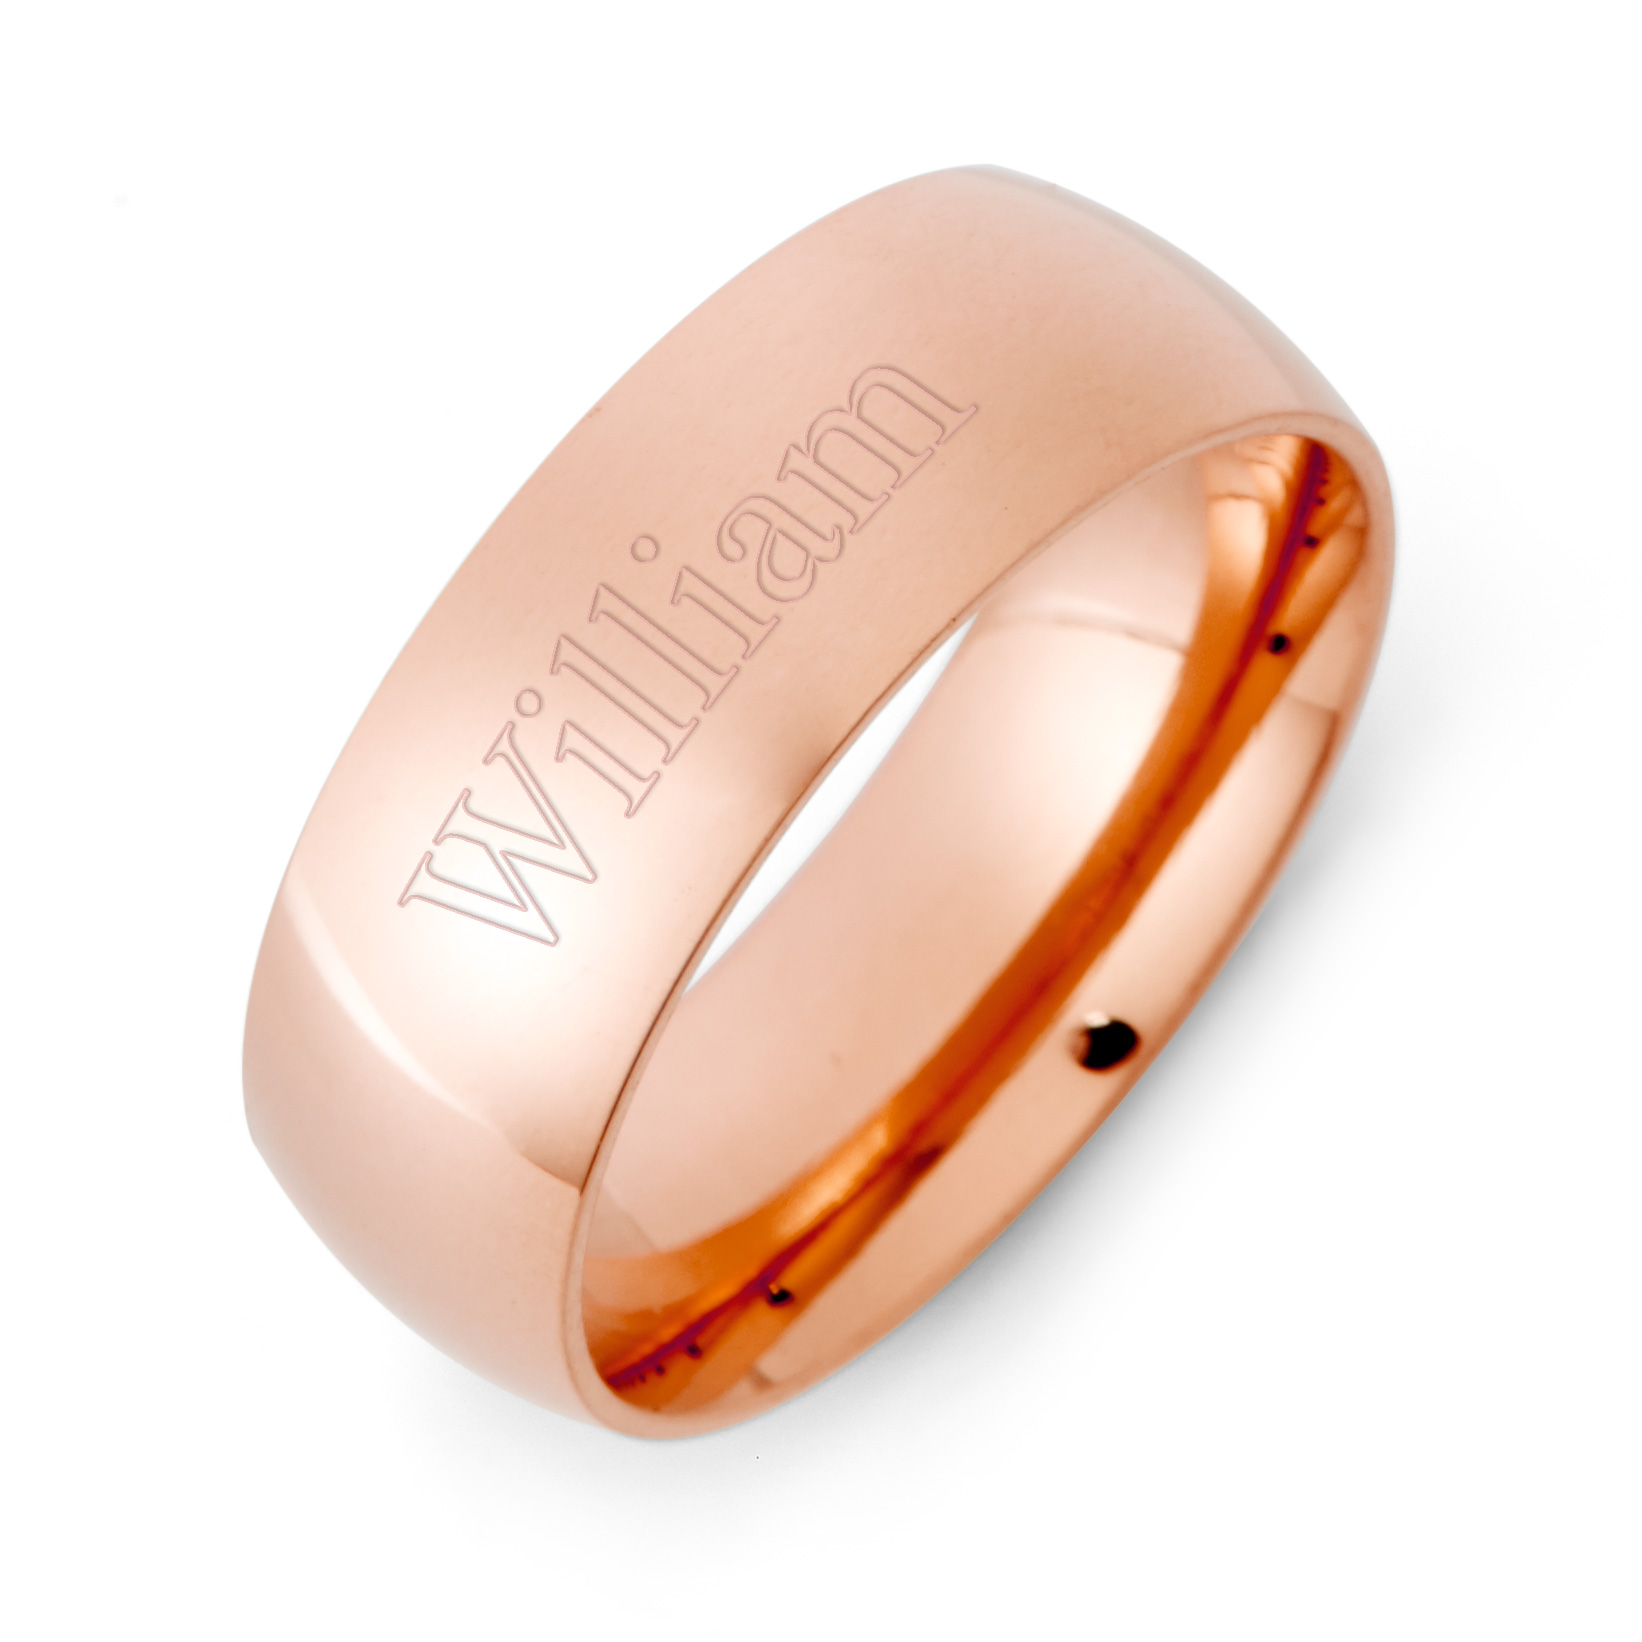 7mm Rose Gold Stainless Steel Wedding Band This 7mm Rose Gold Wedding Band is a classic design that will never go out of style with a unique color twist. With a high polish surface, this band gleams in the light, making it a beautiful part of anyone's hand. The curved inner surface adds a  comfort fit  feature, making this ring expecially easy to wear. Add an engraving on the inside and outside to this 7mm comfort fit rose gold wedding ring, for a personalized touch.   Details: • 7mm Comfort Band • Rose Gold Plated Stainless Steel • Two Engraving Option